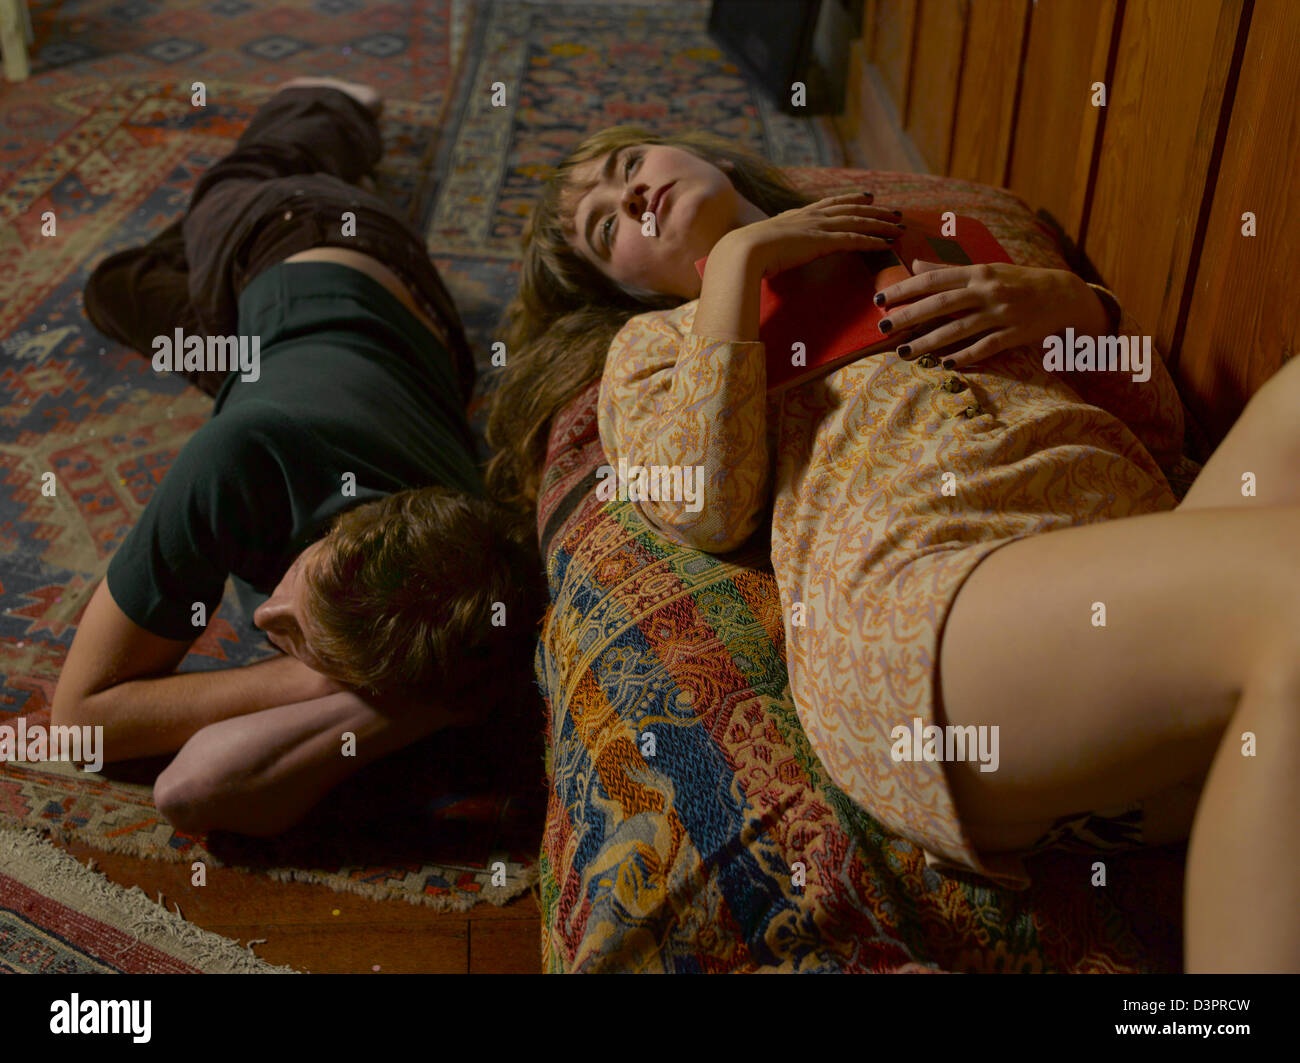 A boy and girl laying down on the ground together - Stock Image